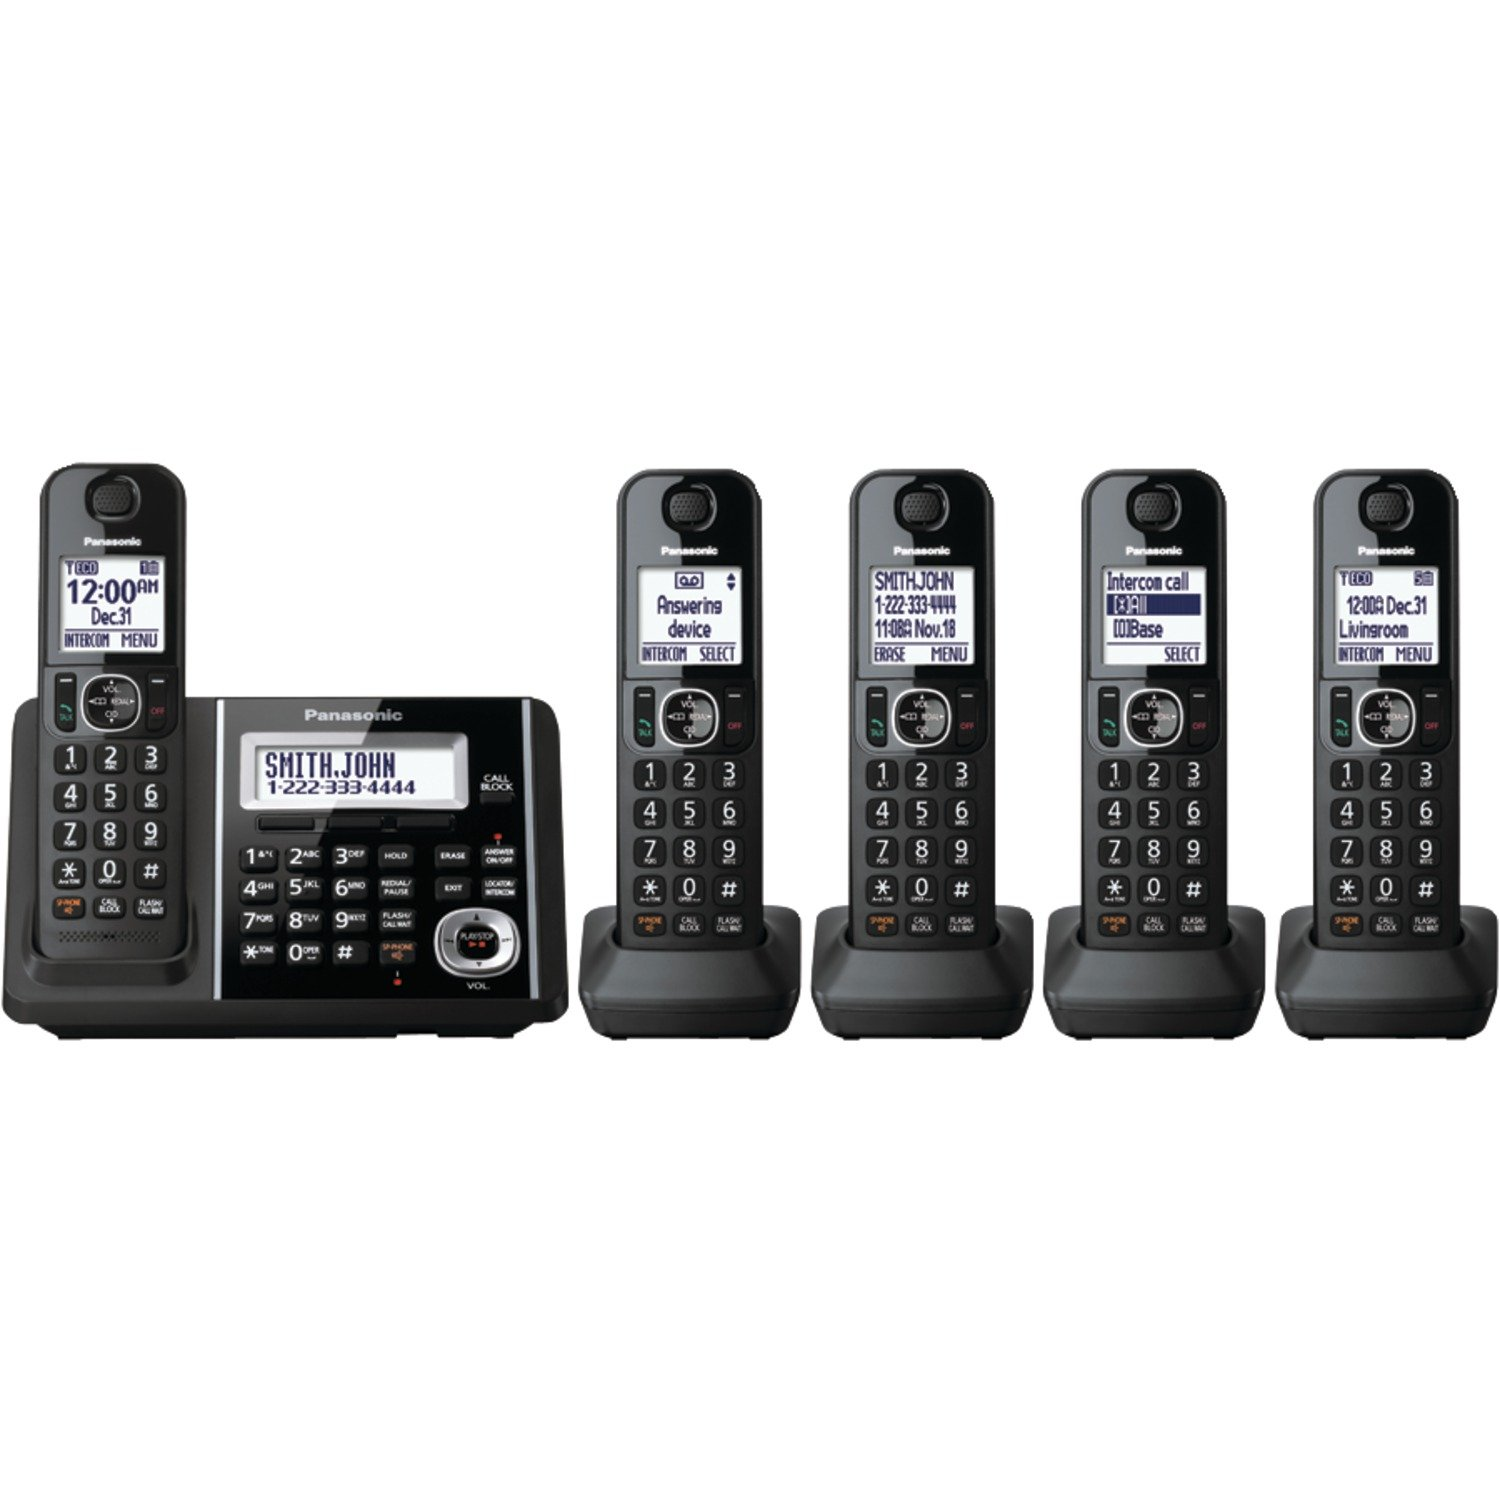 Panasonic Expandable KX-TGF345B Cordless Phone with Answering Machine - 5 Handsets